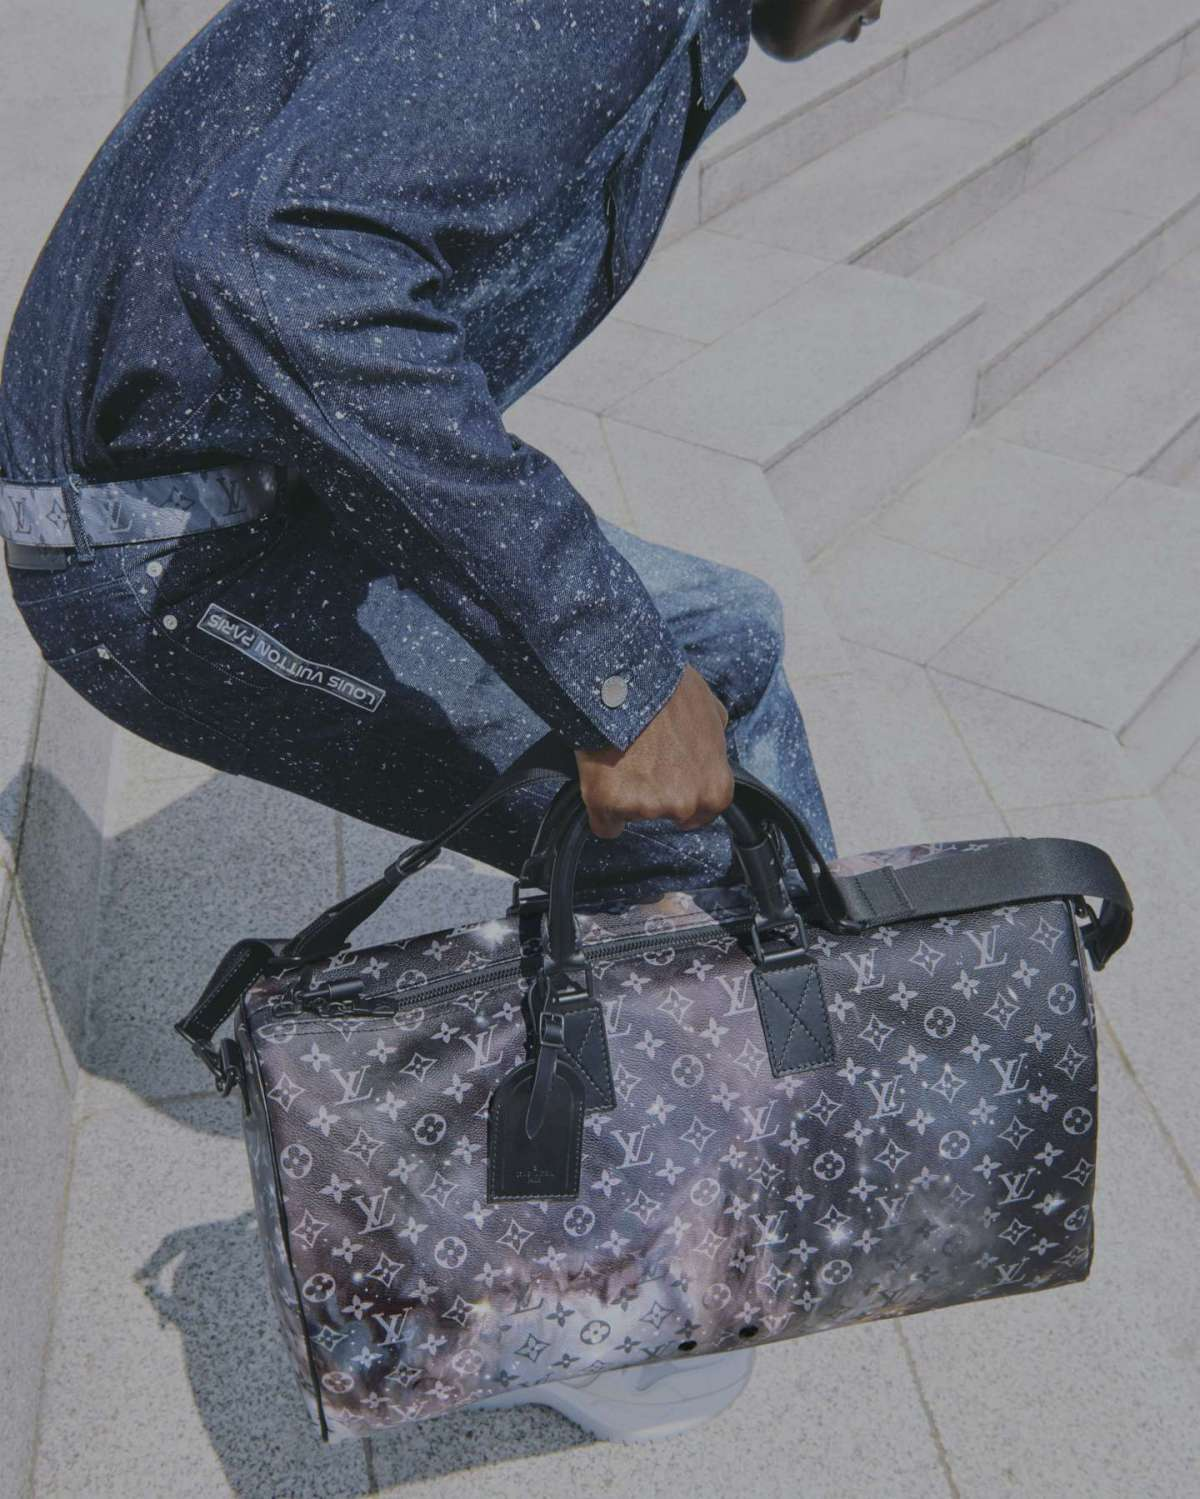 Borsa Louis Vuitton uomo